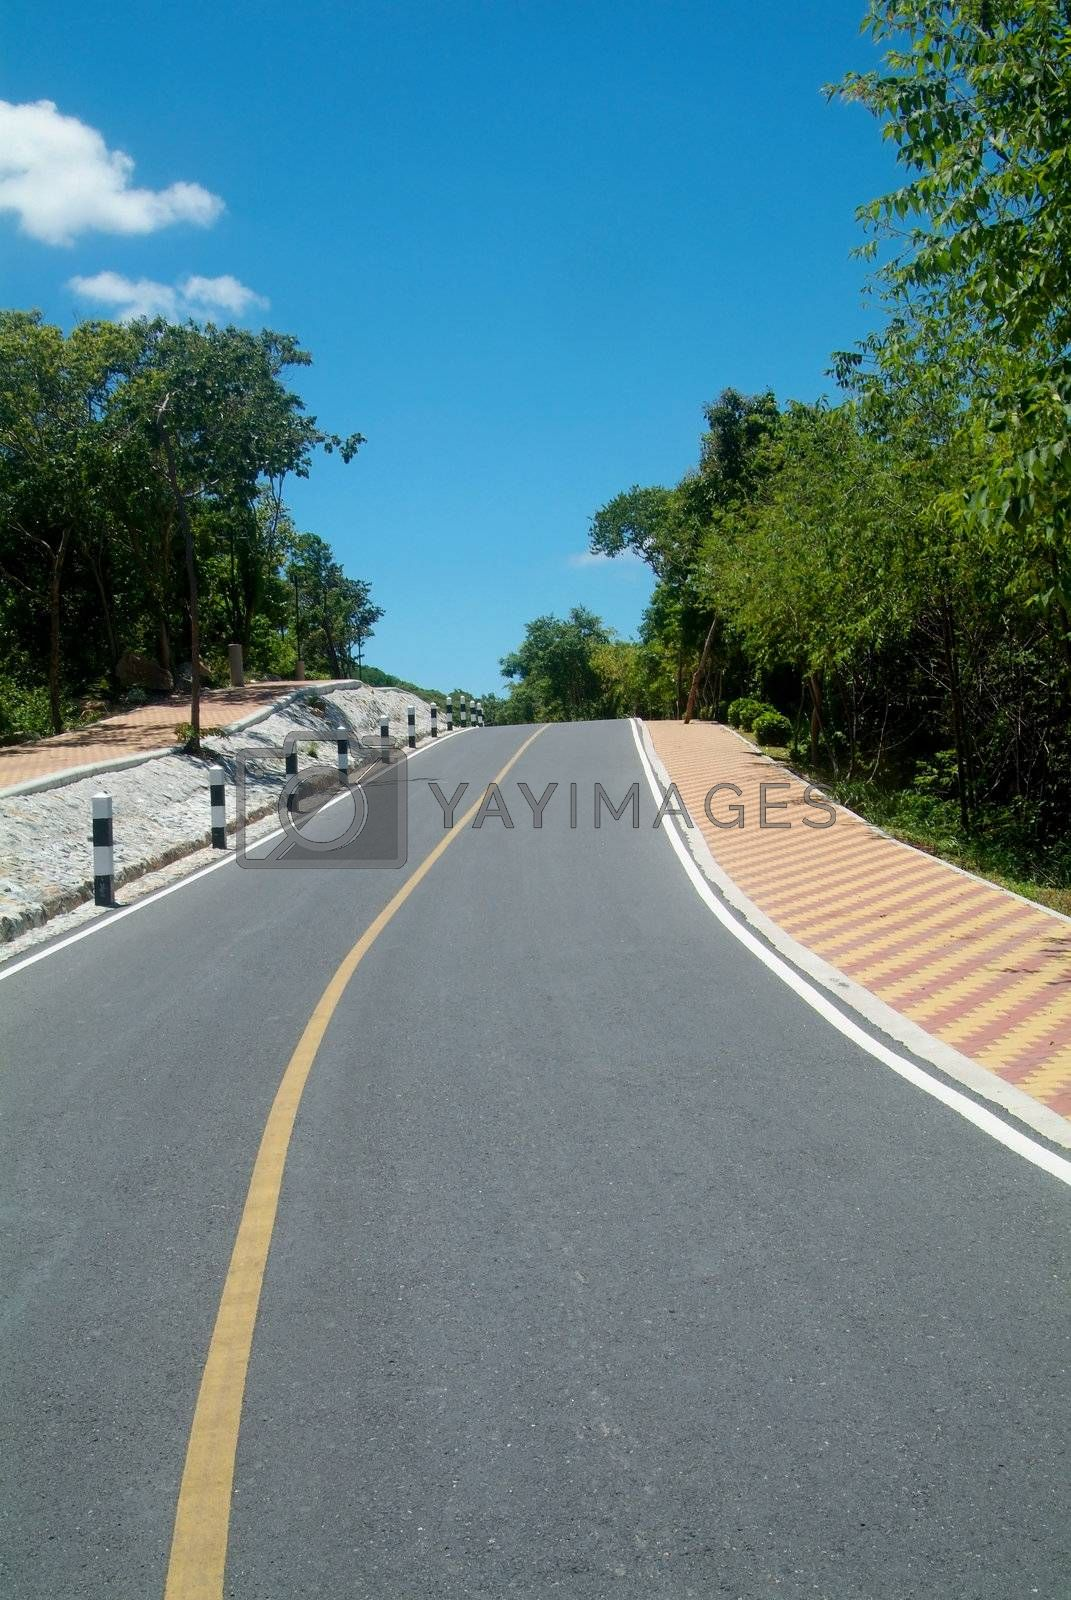 Royalty free image of Country-road over a hill by epixx